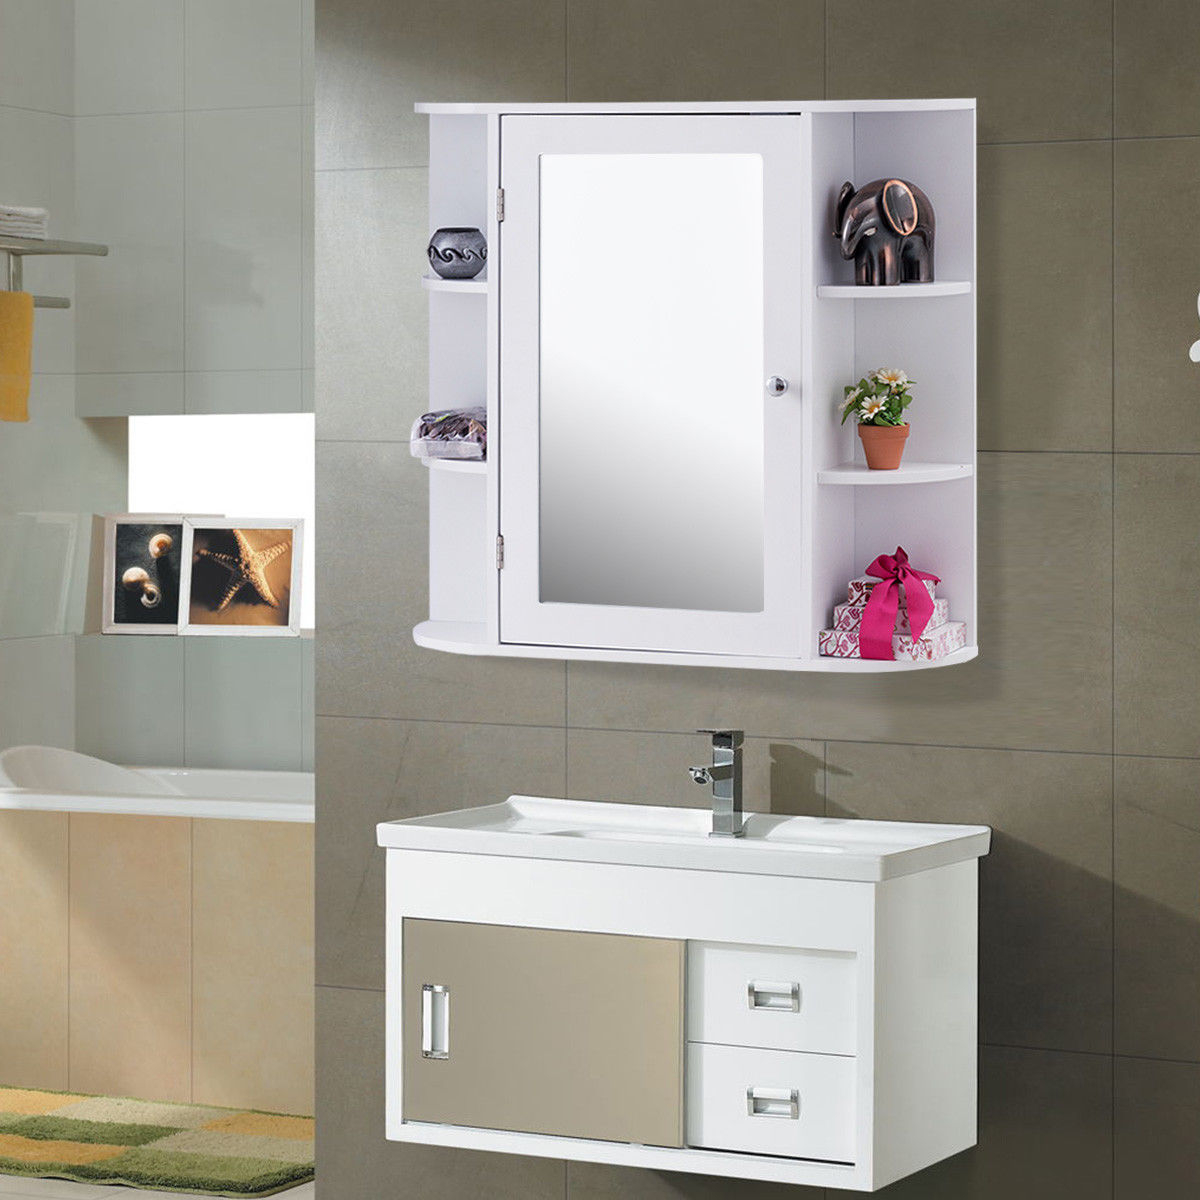 Us 12599 Giantex Multipurpose Mount Wall Surface Bathroom Storage Cabinet With Mirror White Modern Wood Bathroom Furniture Hw56729 On in proportions 1200 X 1200